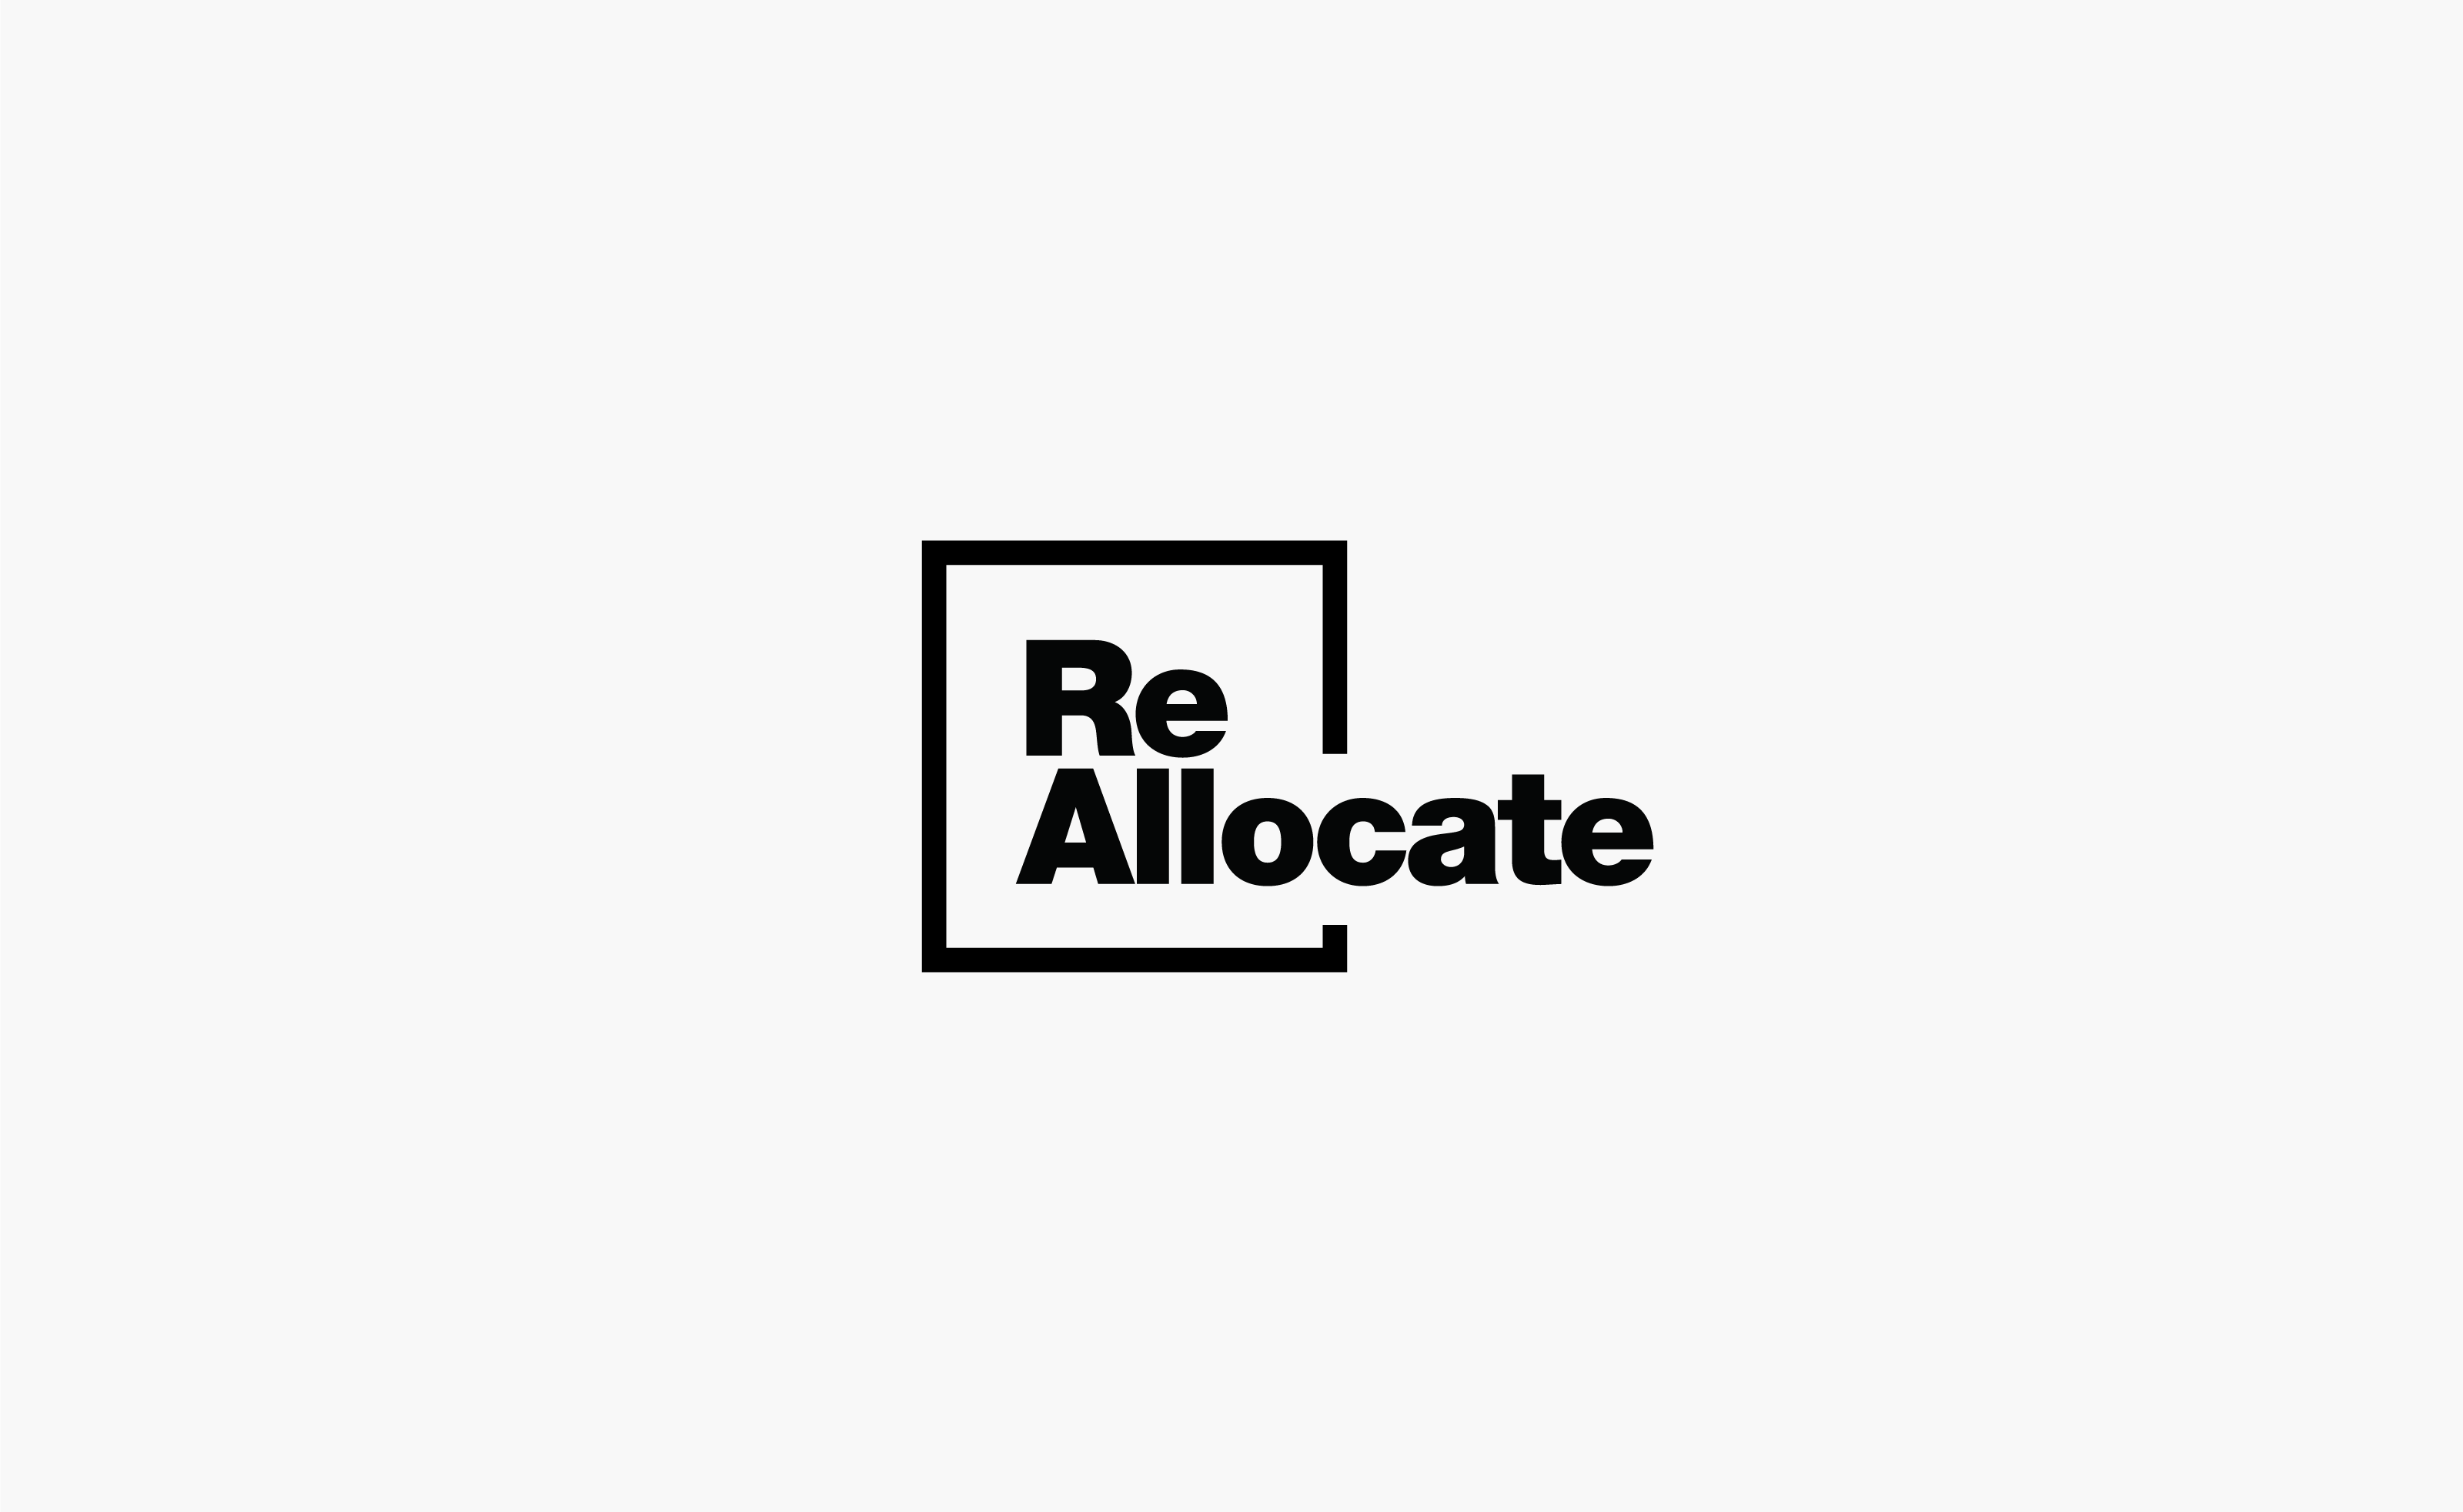 RealCrowd ReAllocate logo centered on a grey background — by Yagnyuk.